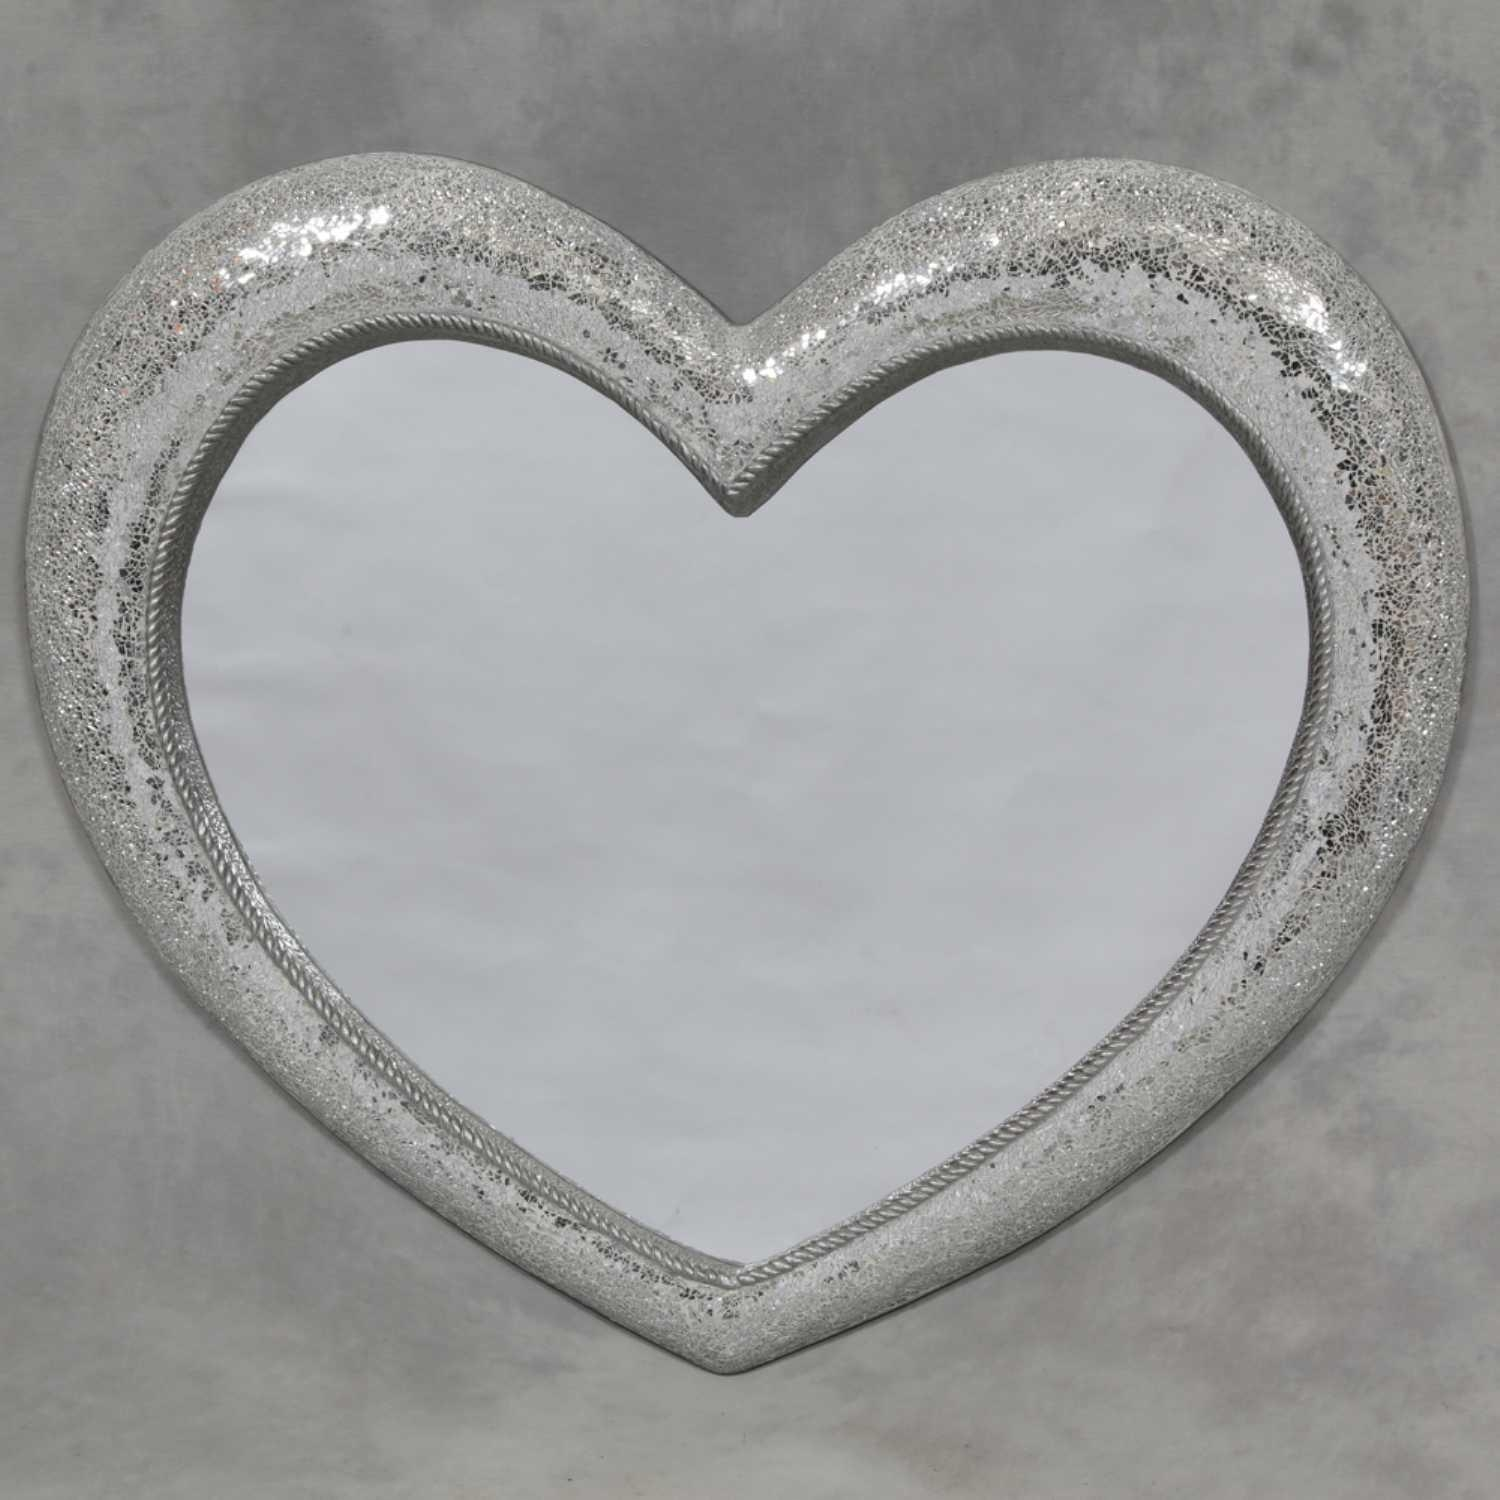 Large Mosaic Crackle Glass Framed Heart Shaped Wall Mirror Intended For Large Mosaic Mirror (Image 6 of 20)